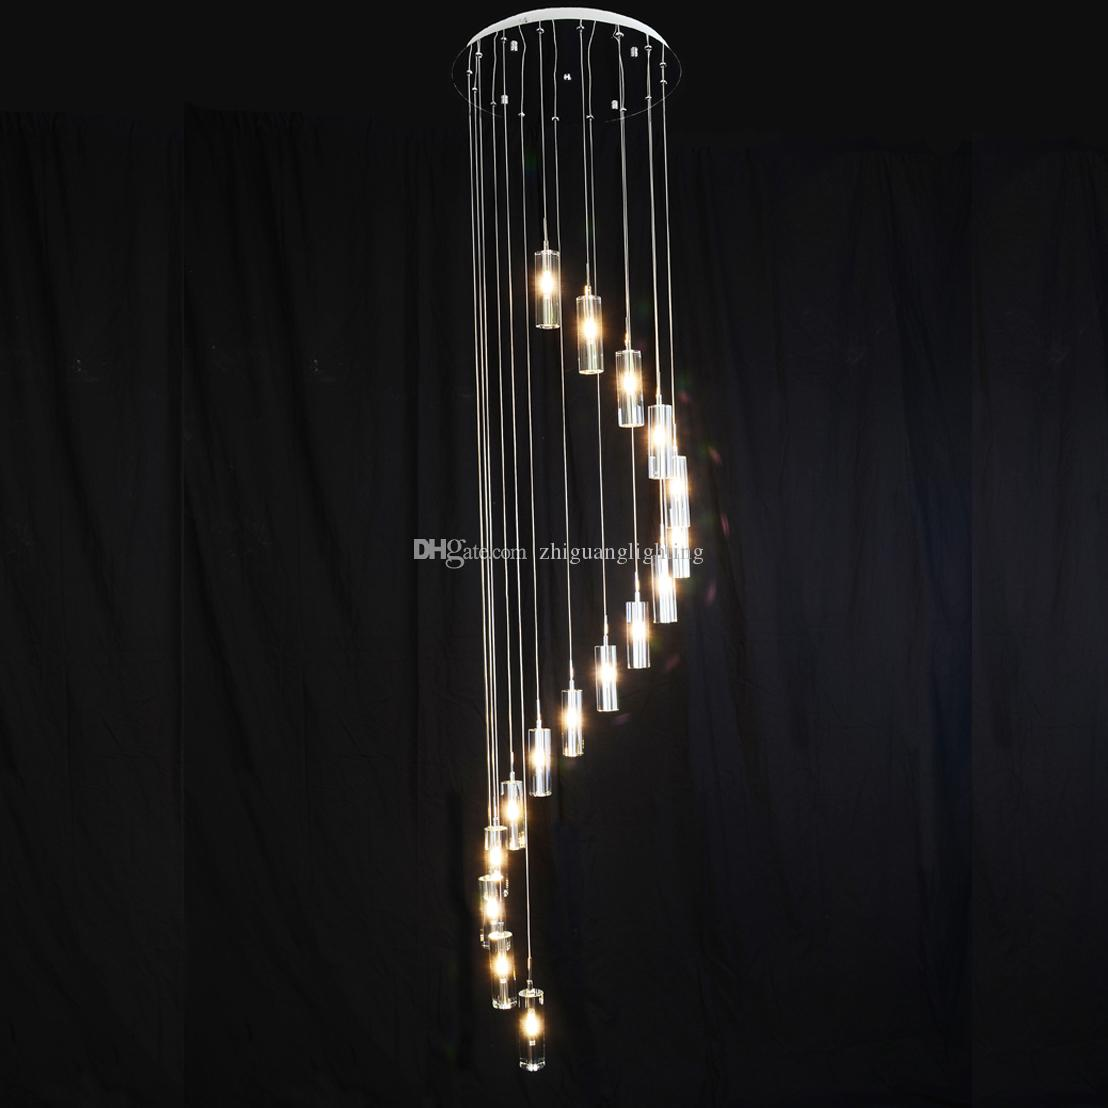 Lovely Large Spiral Crystal Chandelier Led Suspension Luminaire Lights For Living Room Chandelier Lighting Stairway Gold Led Chandelier Convenient To Cook Ceiling Lights & Fans